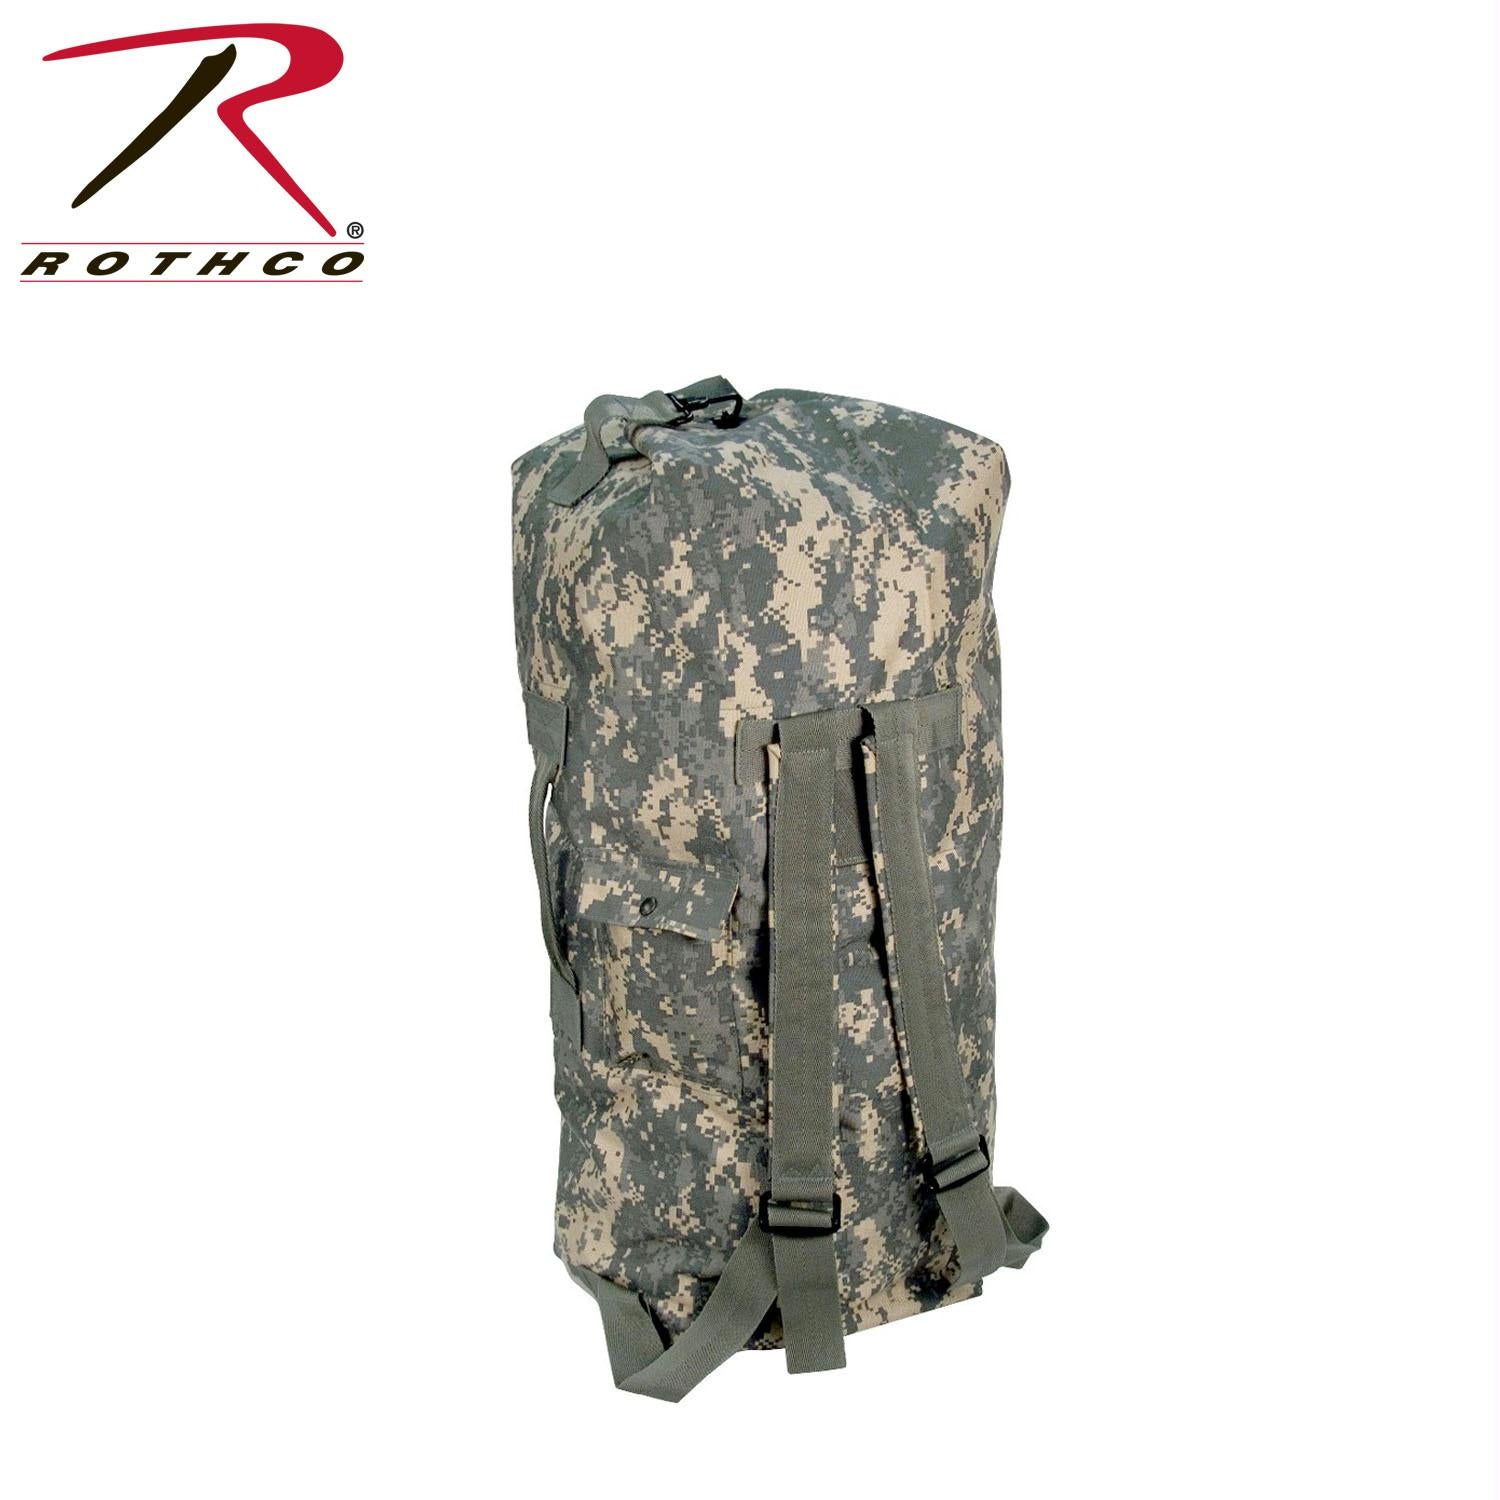 Rothco G.I. Type Enhanced Double Strap Duffle Bag - ACU Digital Camo